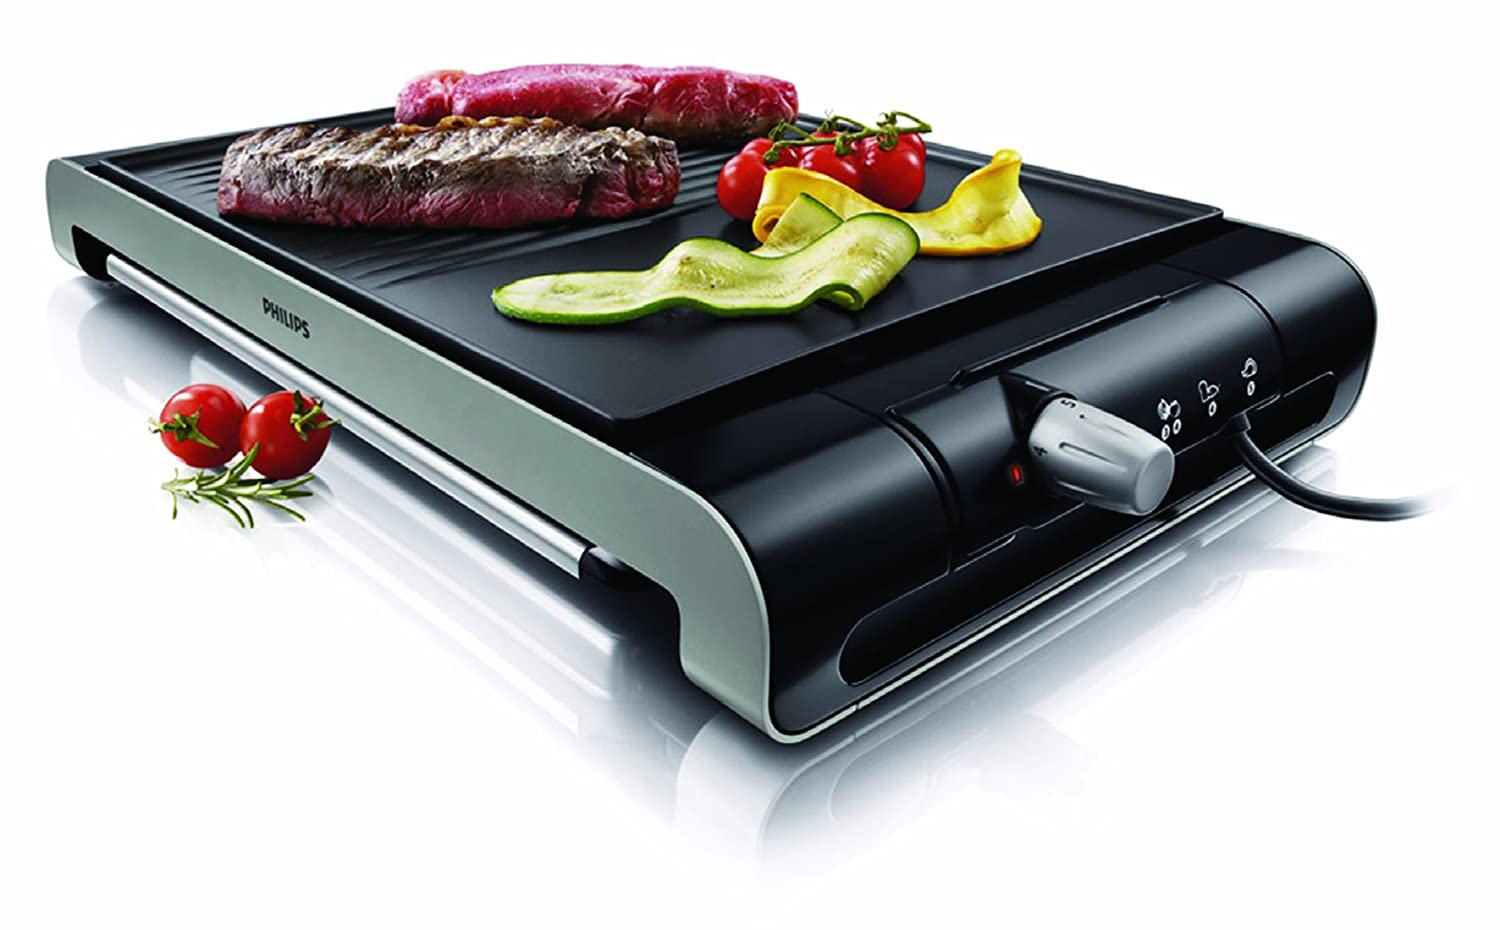 Philips Tischgrill amazon